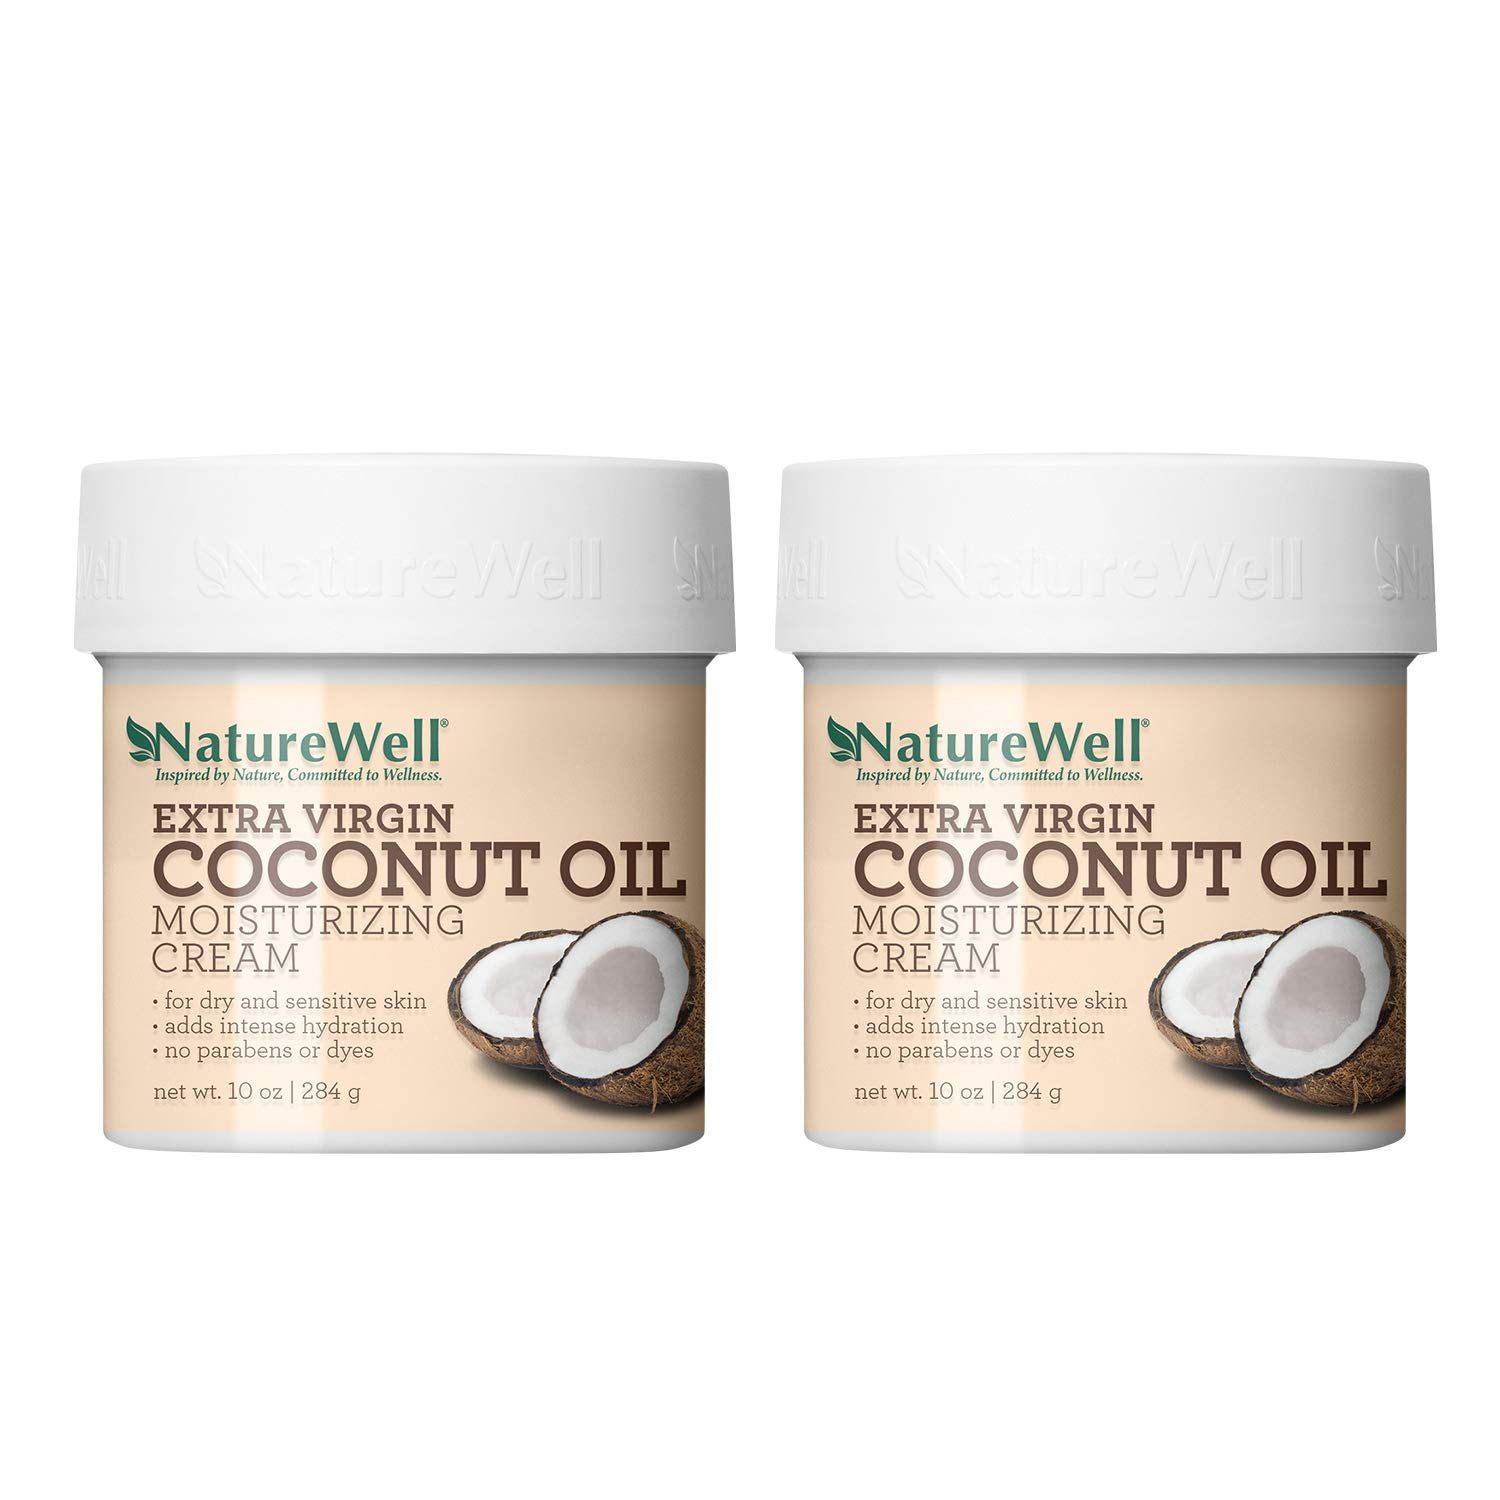 NatureWell Extra Virgin Coconut Oil Moisturizing Cream for Face & Body, 10 oz. | Adds Intensive Hydration to Dry & Sensitive Skin (2 Pack)